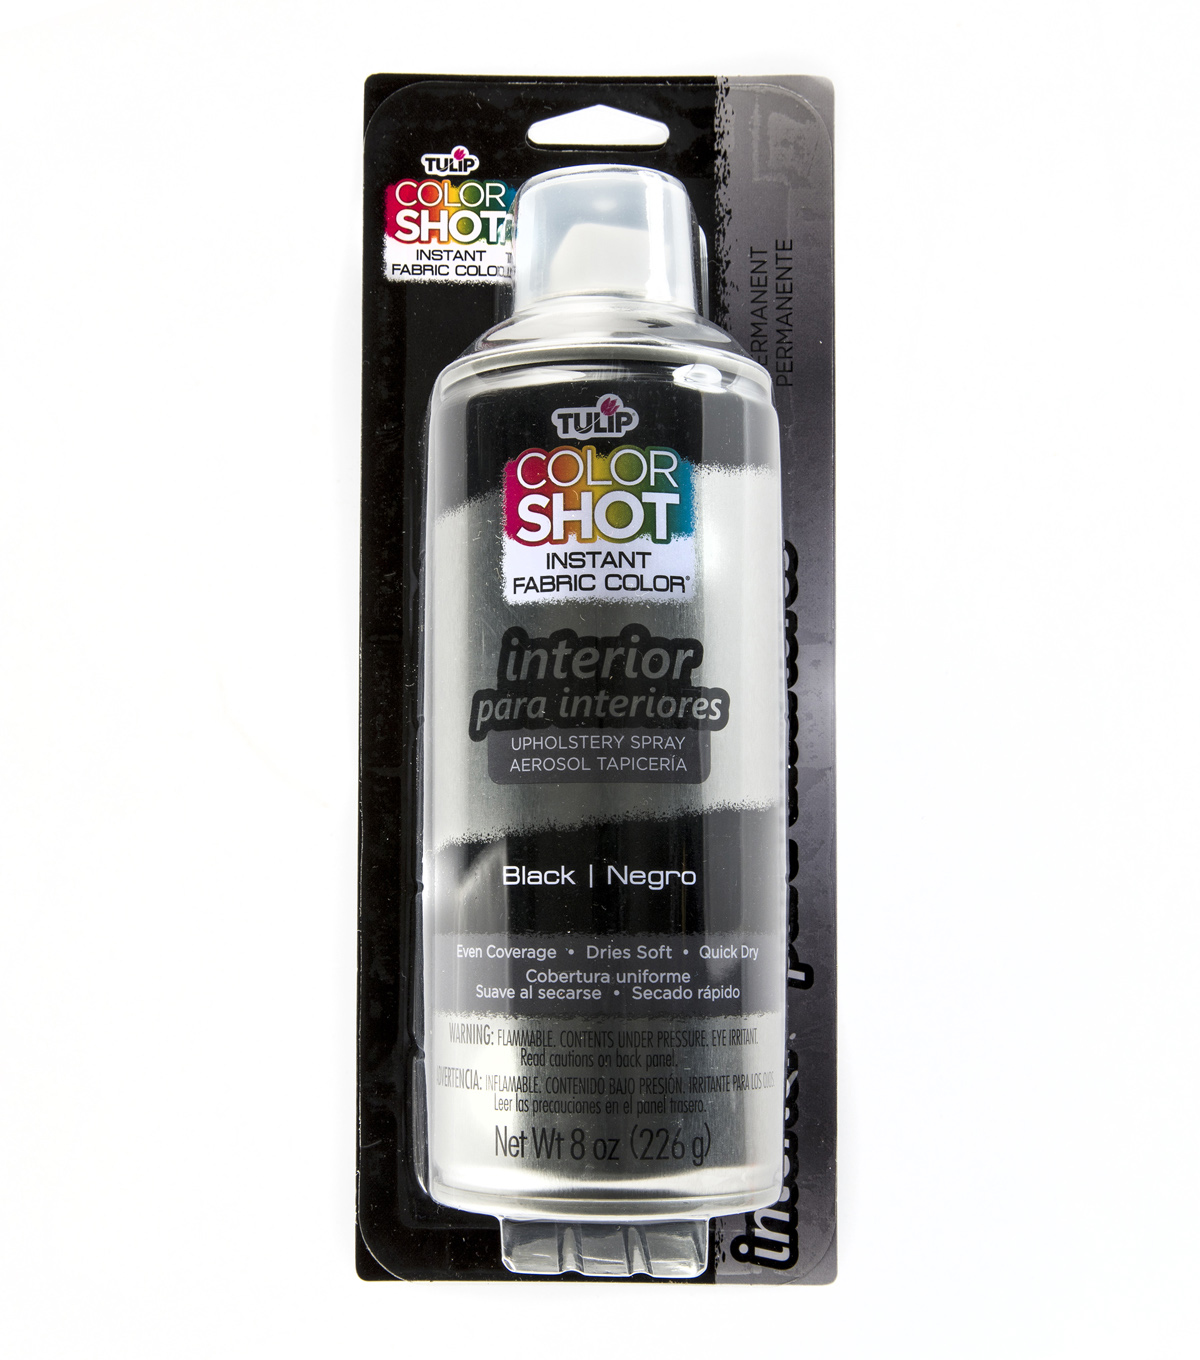 Tulip ColorShot 8oz Indoor Upholstery Spray